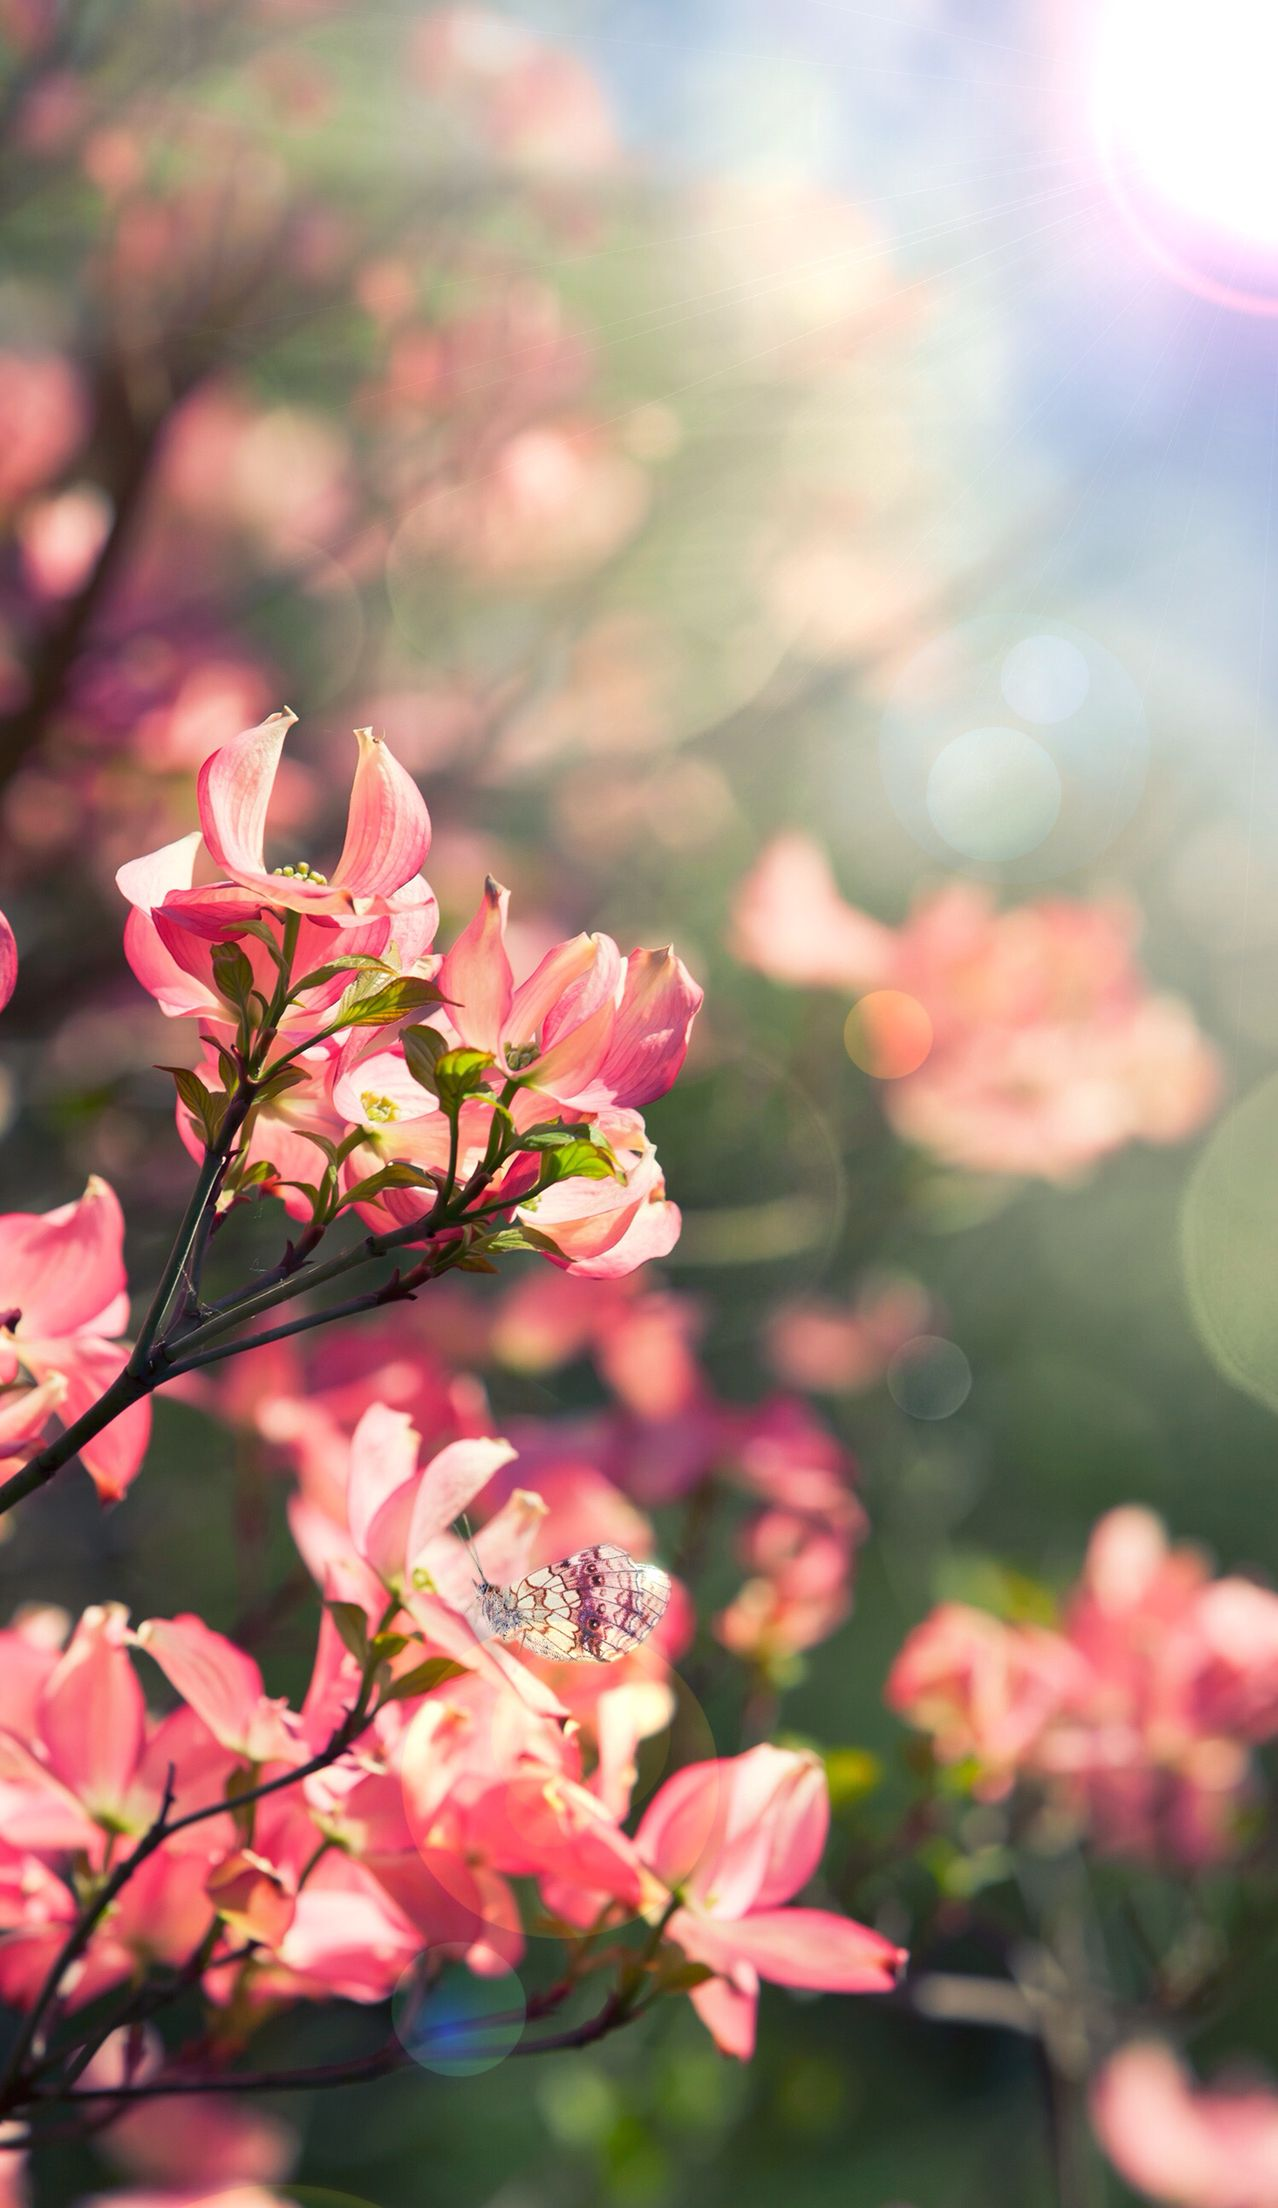 Save And Set Spring Wallpaper Beautiful Flowers Wallpapers Flower Aesthetic